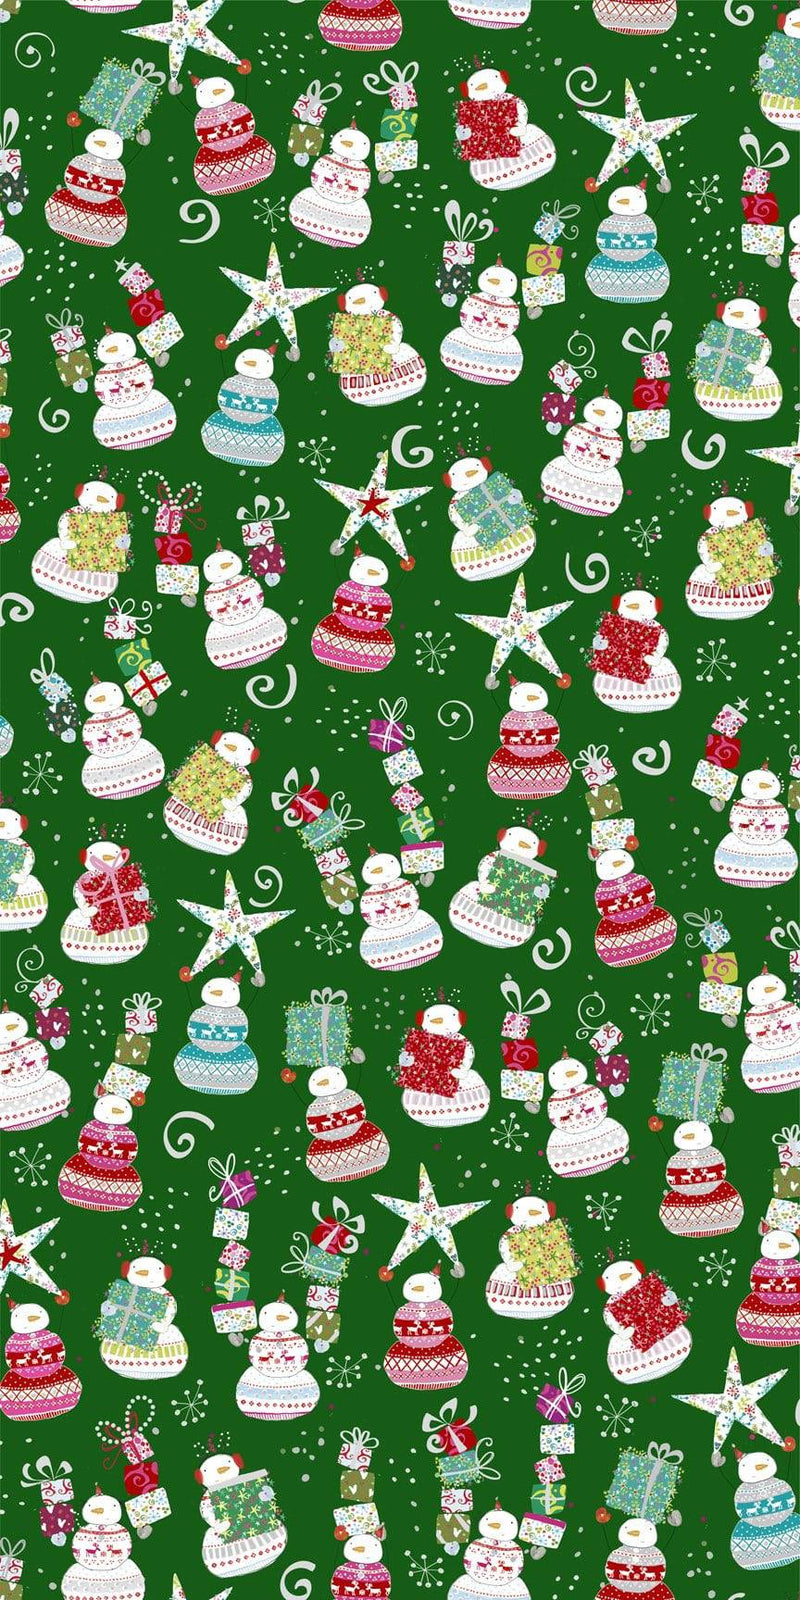 Happy Christmas Snowman Tossed Forest Green 27257-F - Fabrics N Quilts